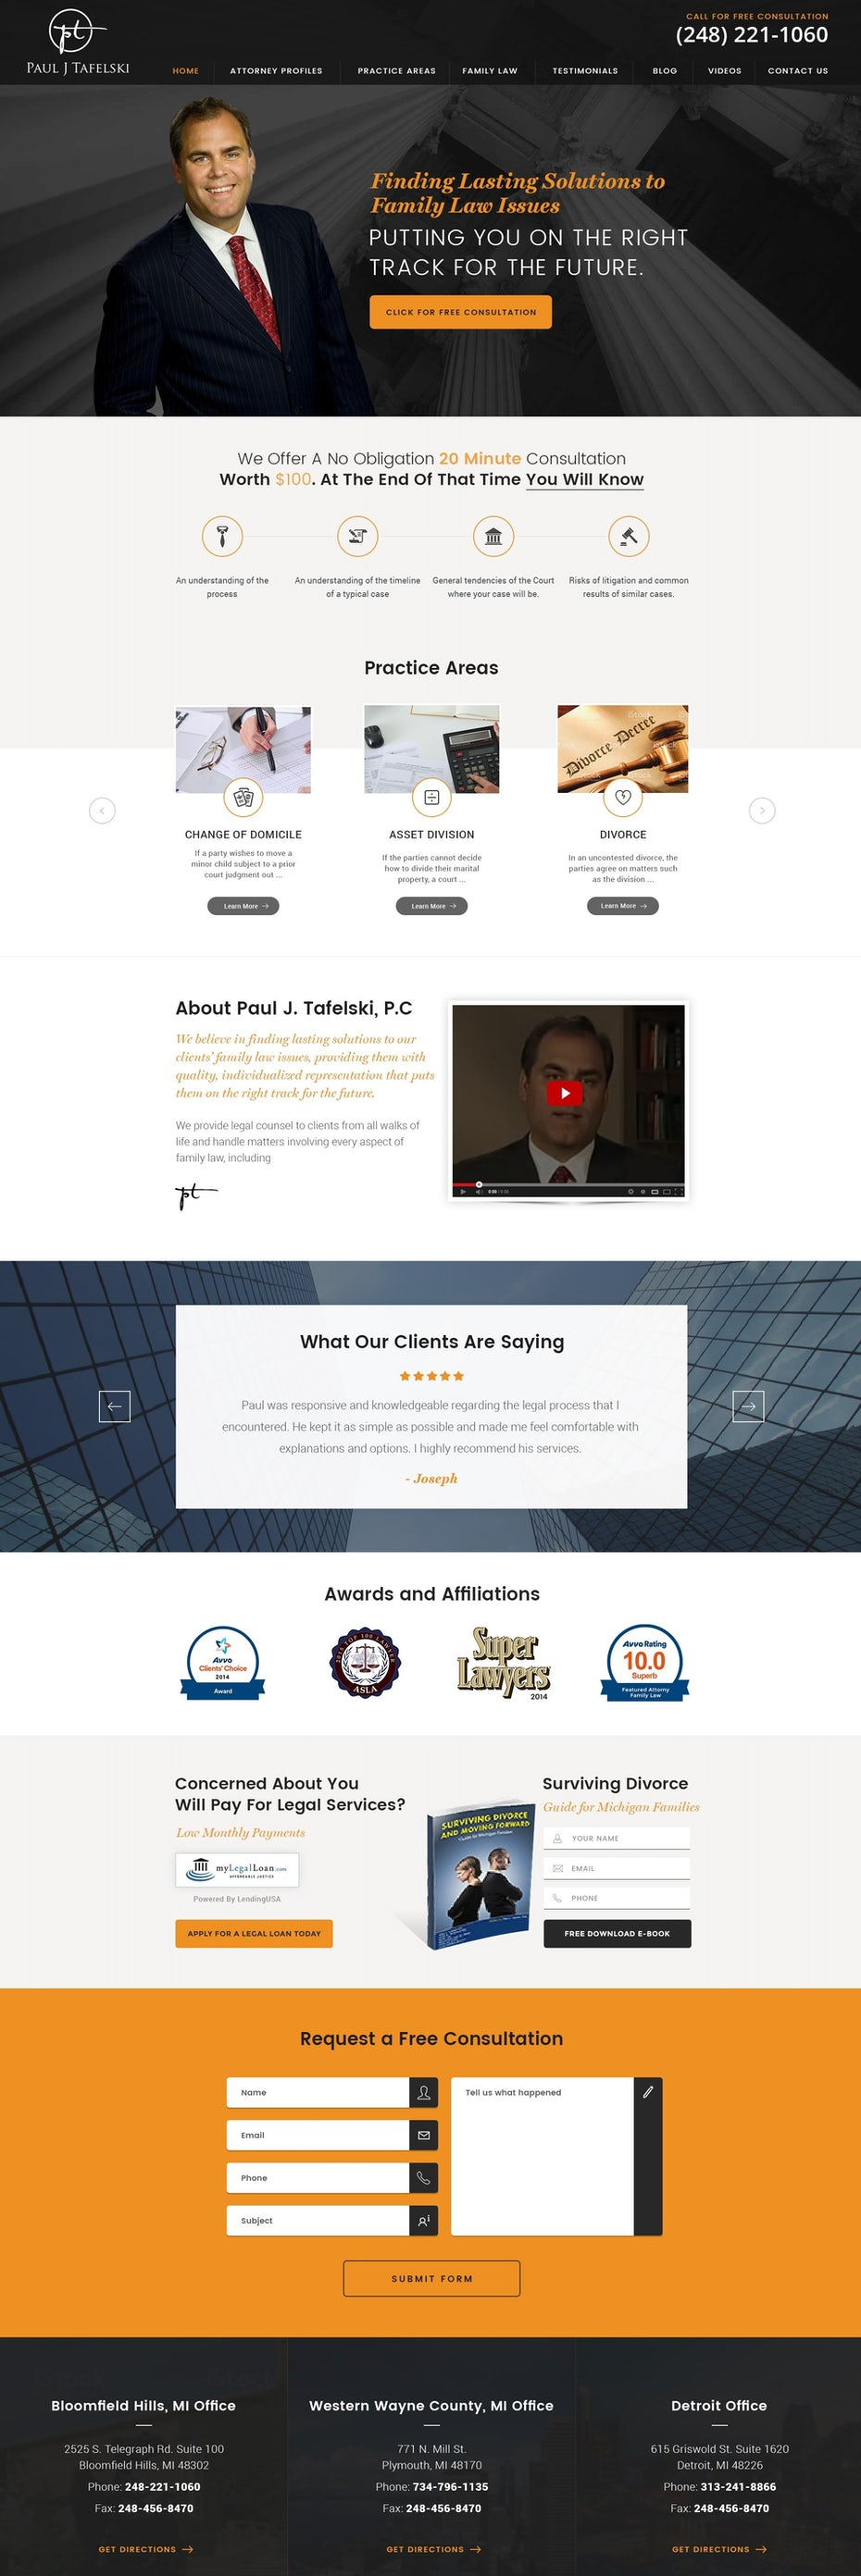 23 Inspirational Landing Page Design Ideas 99designs Electronics Tutorial Sections 1620 Lawyer